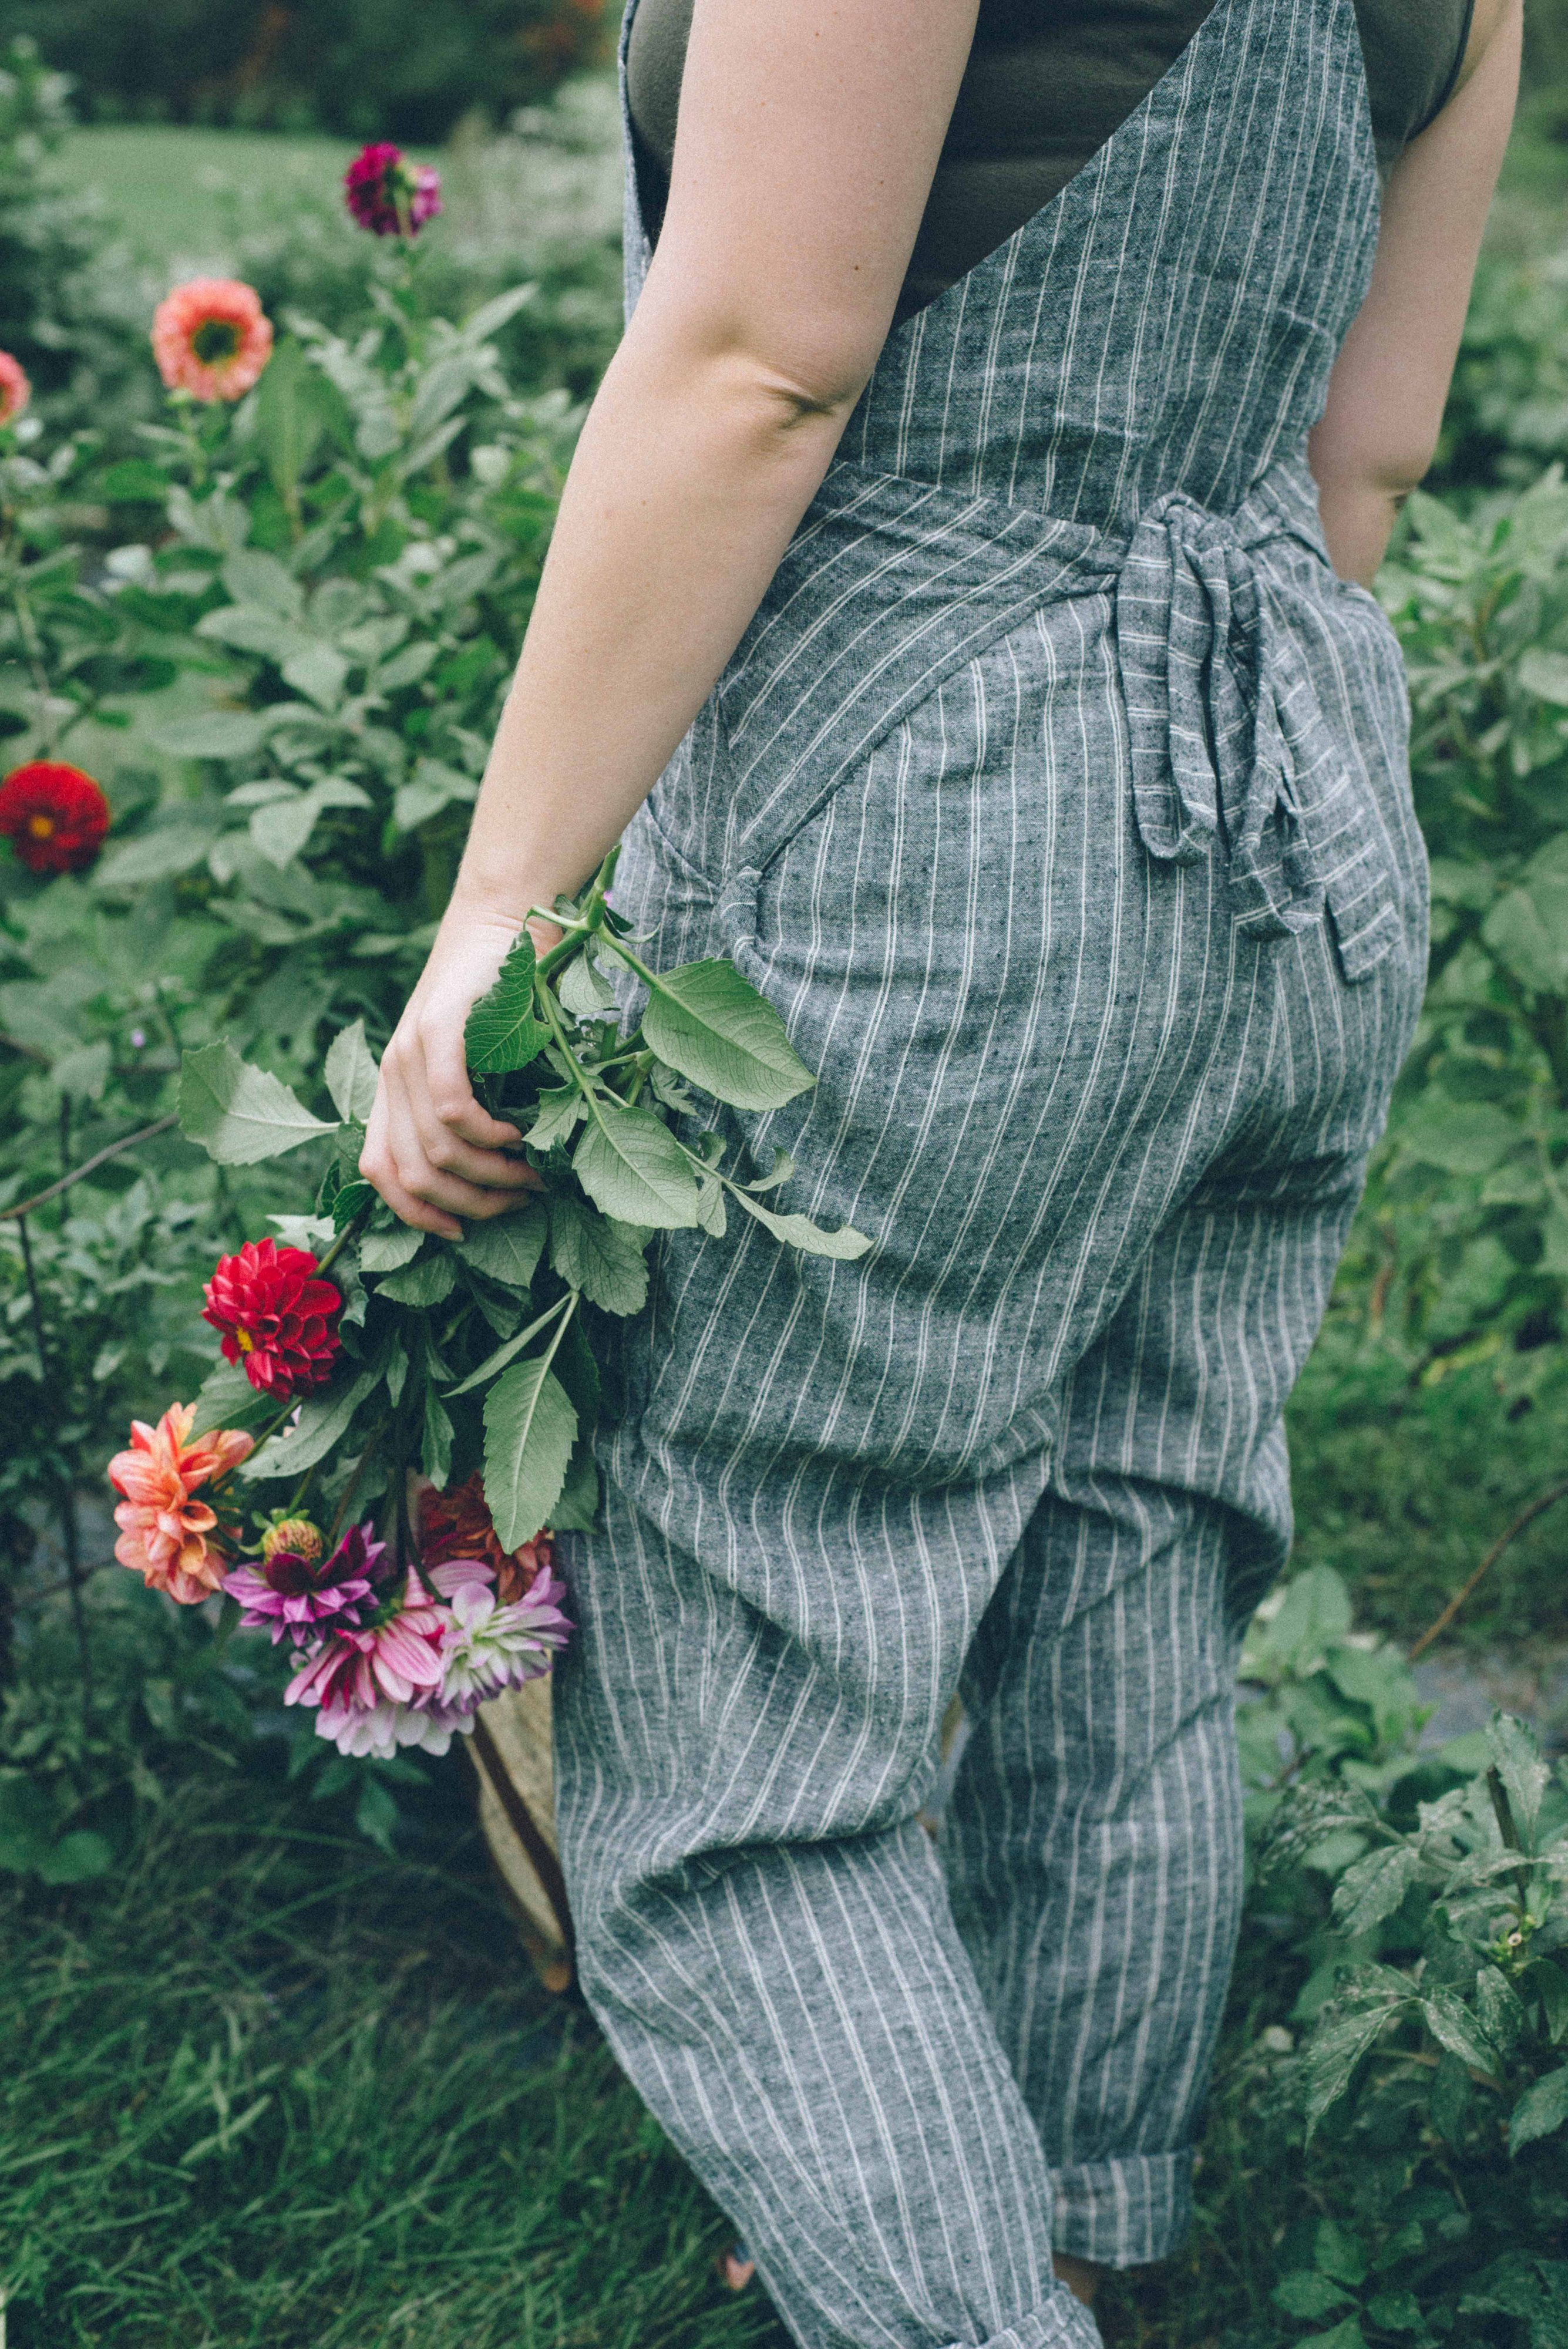 A Daily Something | Meet Lady Farmer, a Sustainable Apparel Company